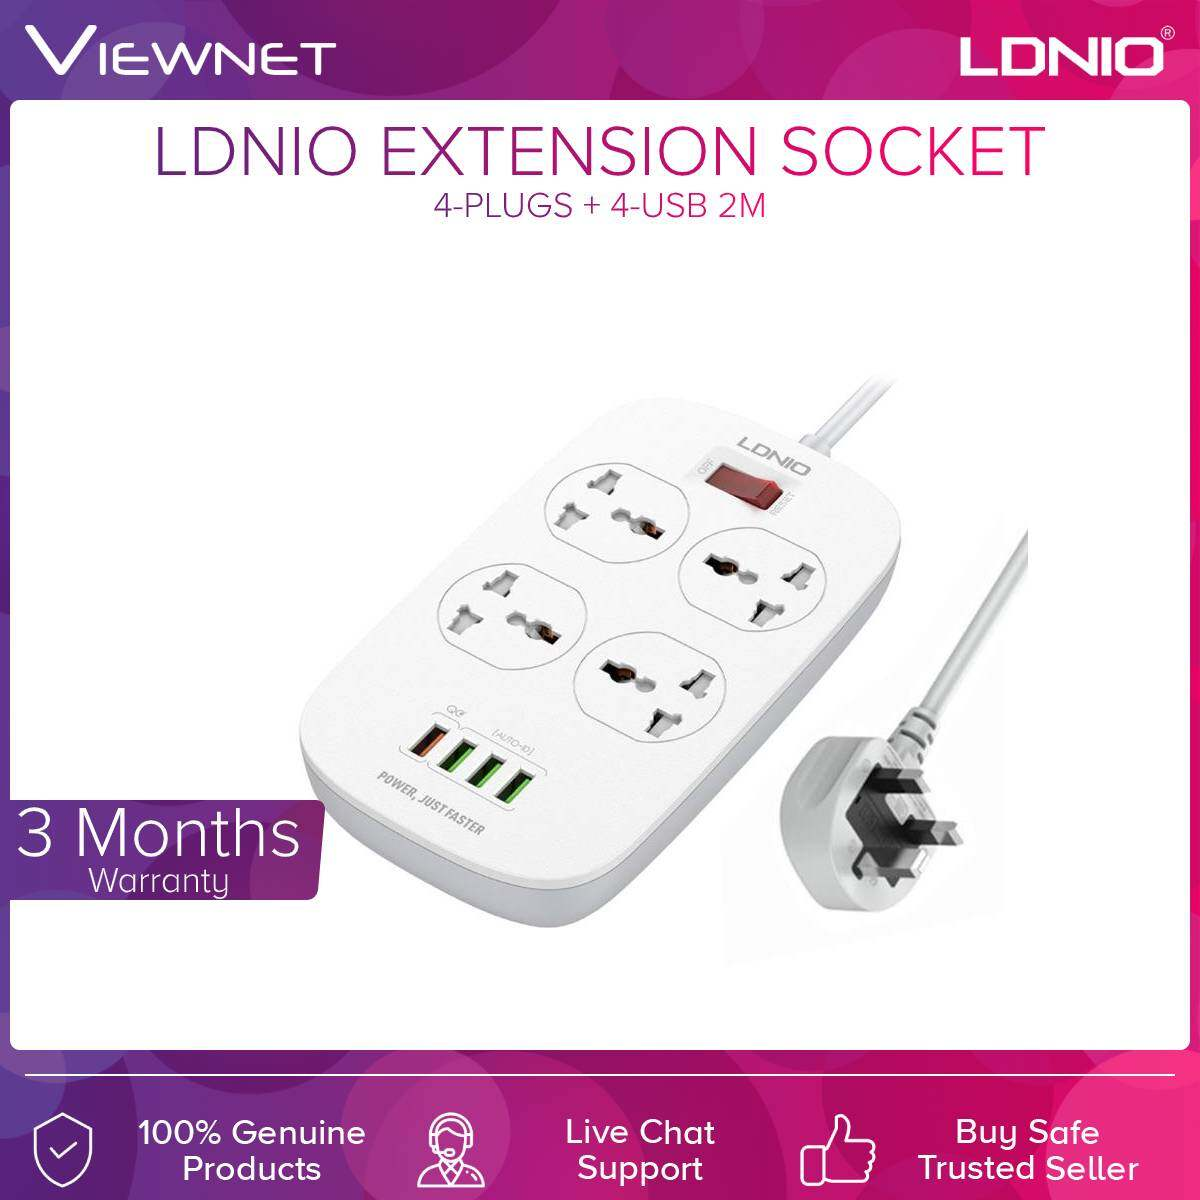 Ldnio Extension Socket 4-Plugs + 4-Usb 2M (SC4407Q)